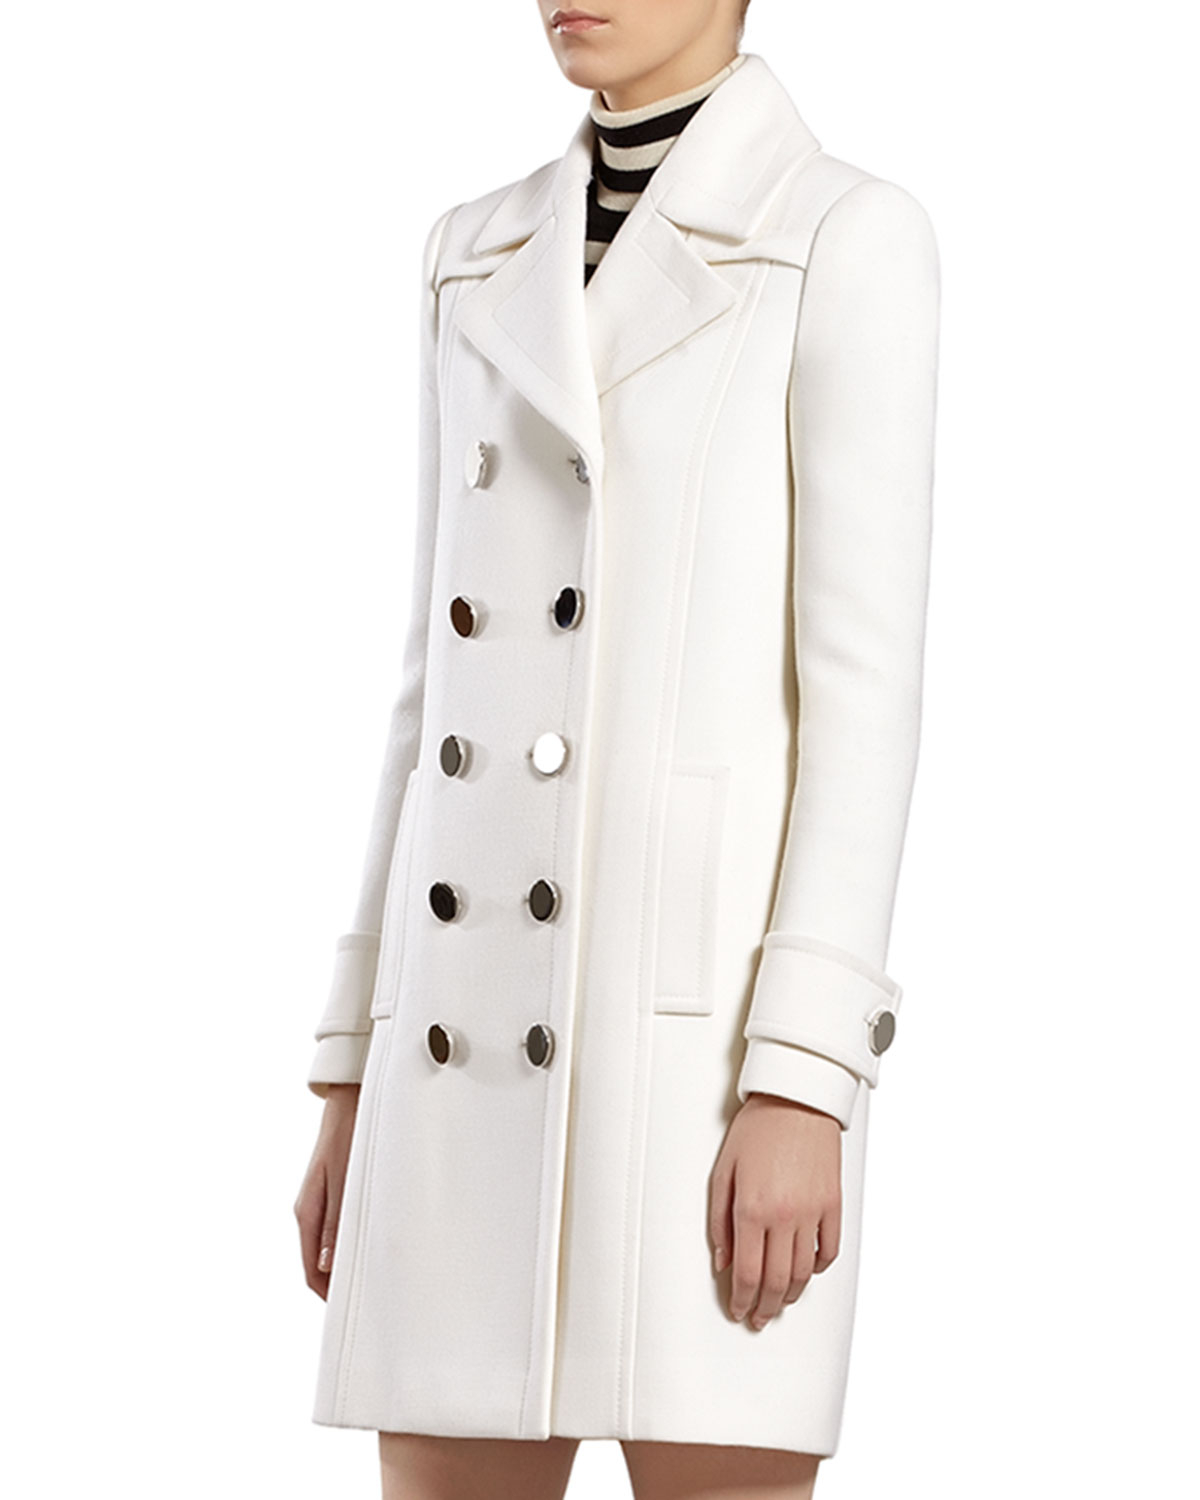 Fashion bug wool coat H&M - Fashion and quality at the best price H&M US